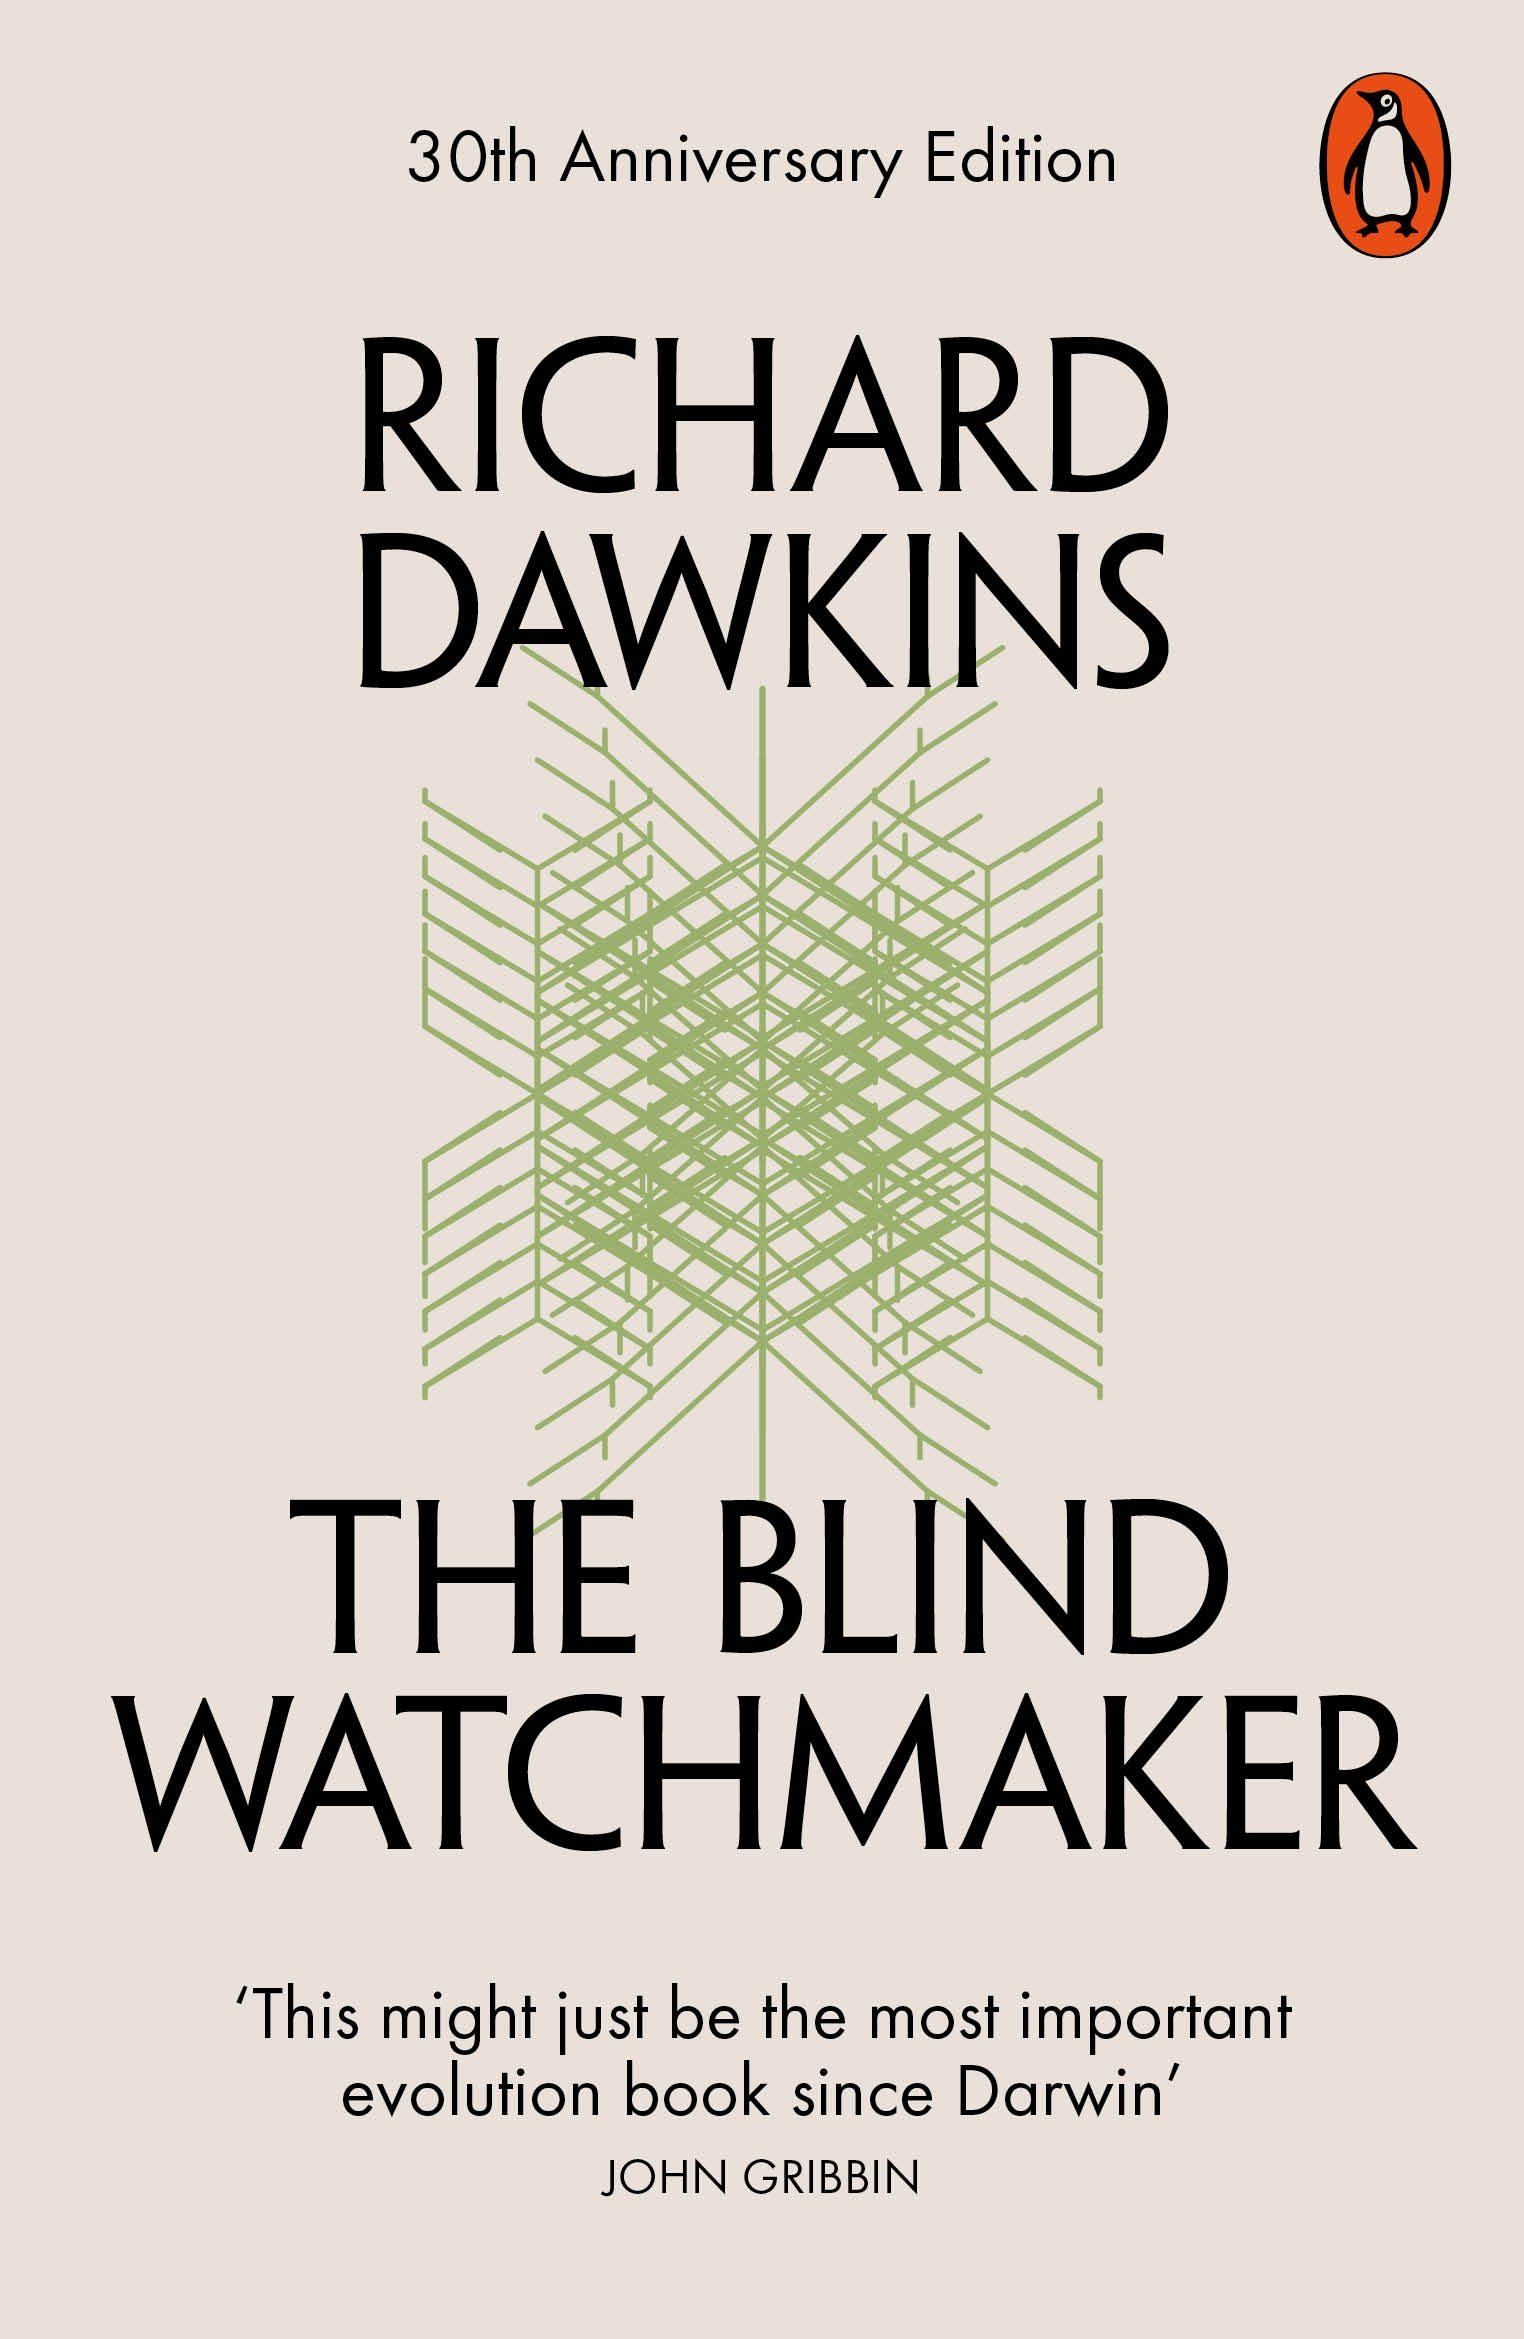 Royal Society s    New Trends in Biological Evolution    A Bloodless     Rational Faith In       in his The Blind Watchmaker  he argued for the view that humans  were not created by God  but by blind random purposeless chance  his       The God